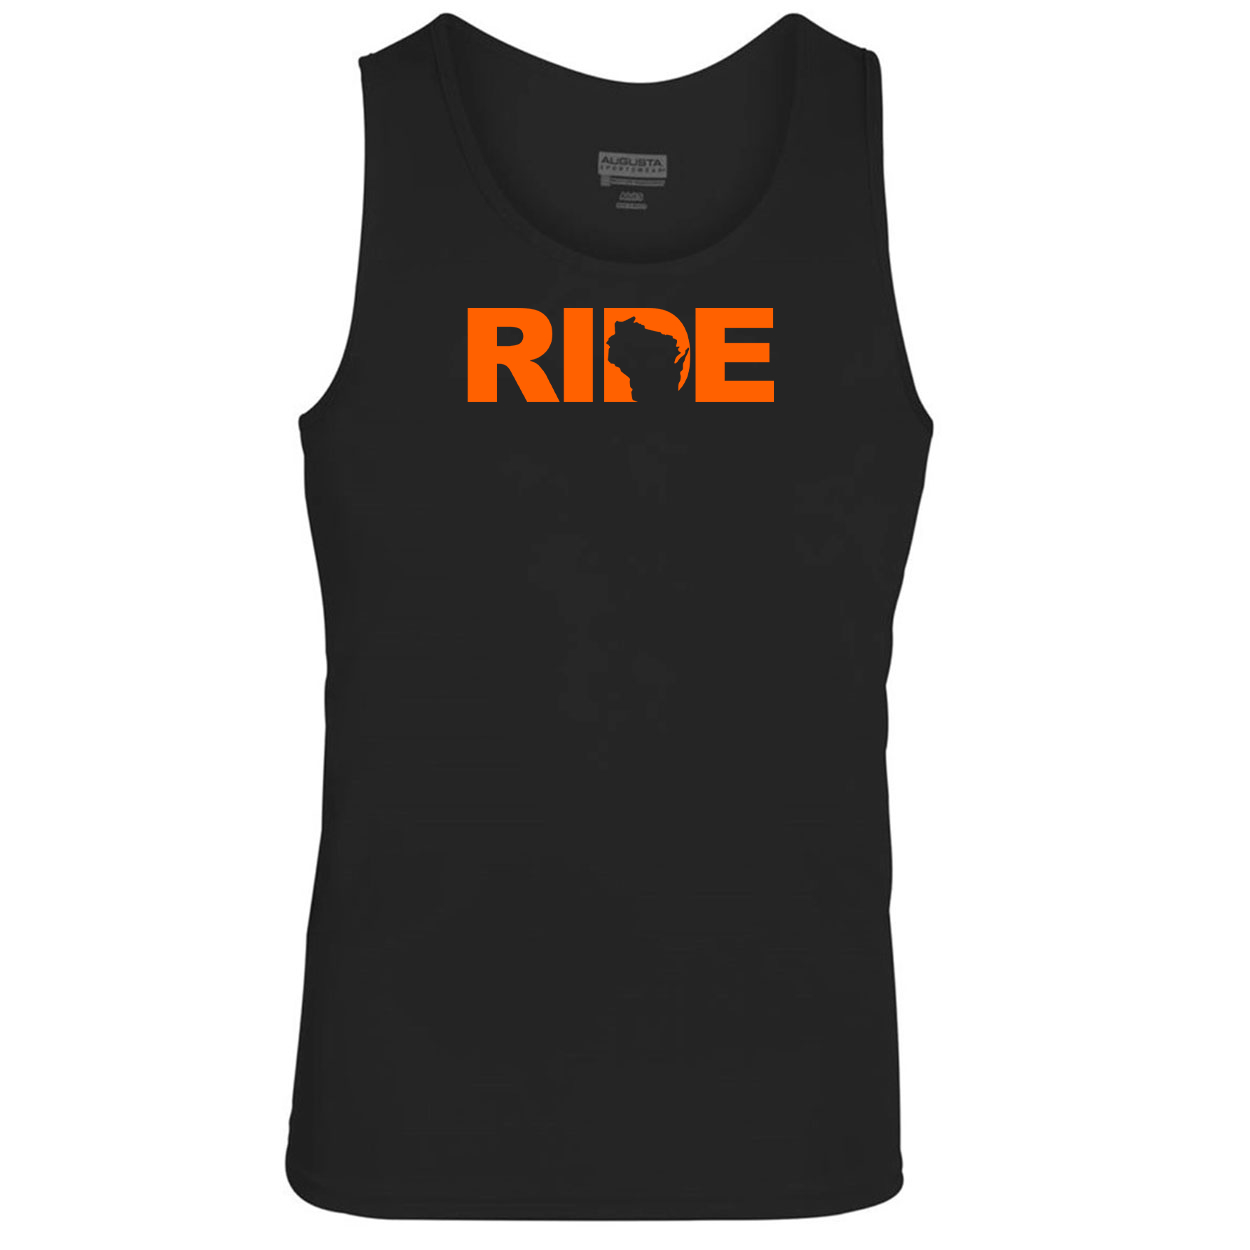 Ride Wisconsin Classic Youth Unisex Performance Tank Top Black (Orange Logo)